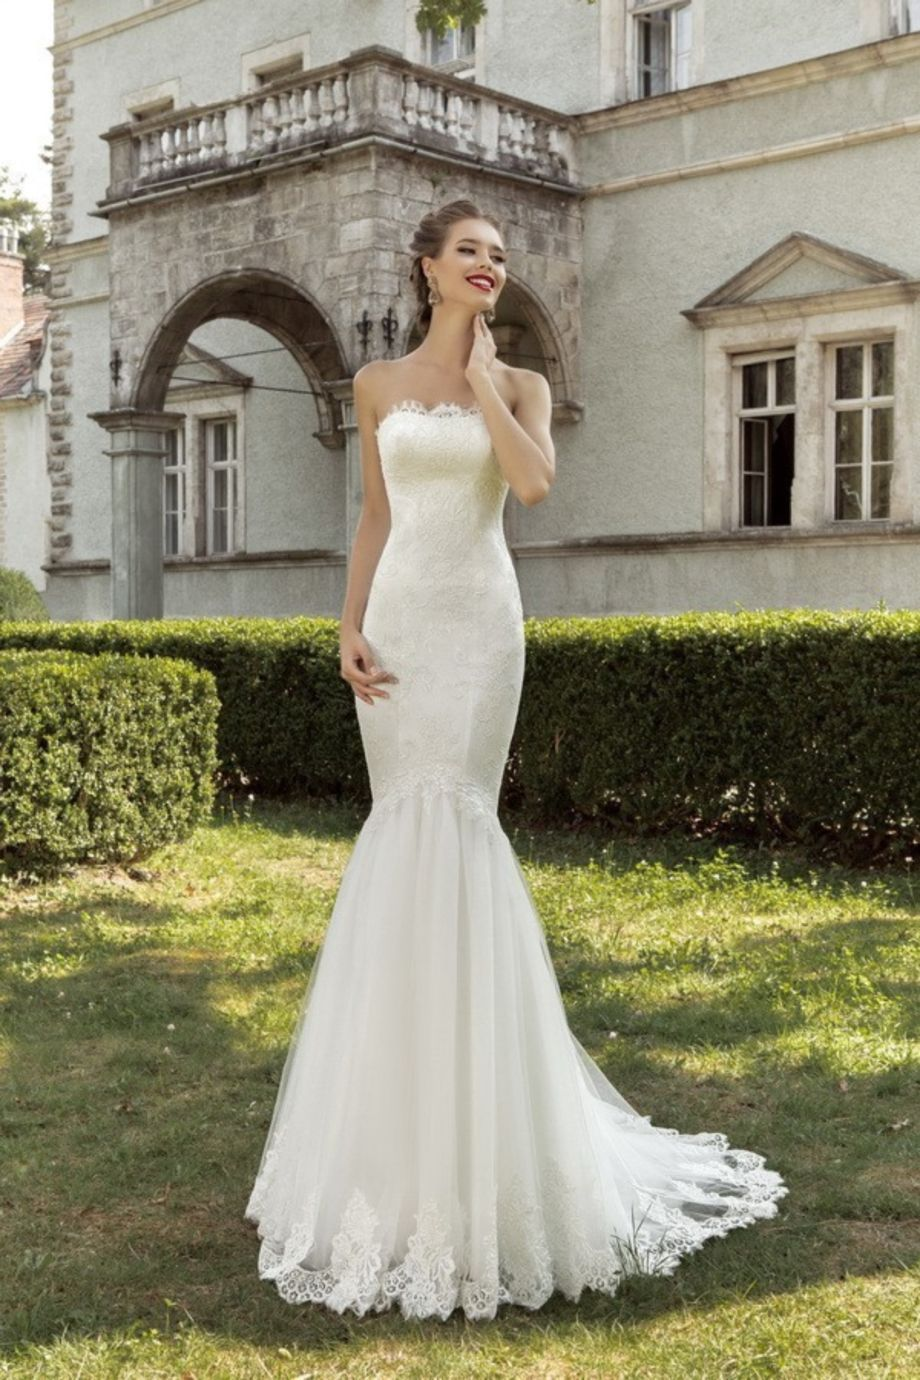 stylish courthouse wedding dress ideas the big day pinterest